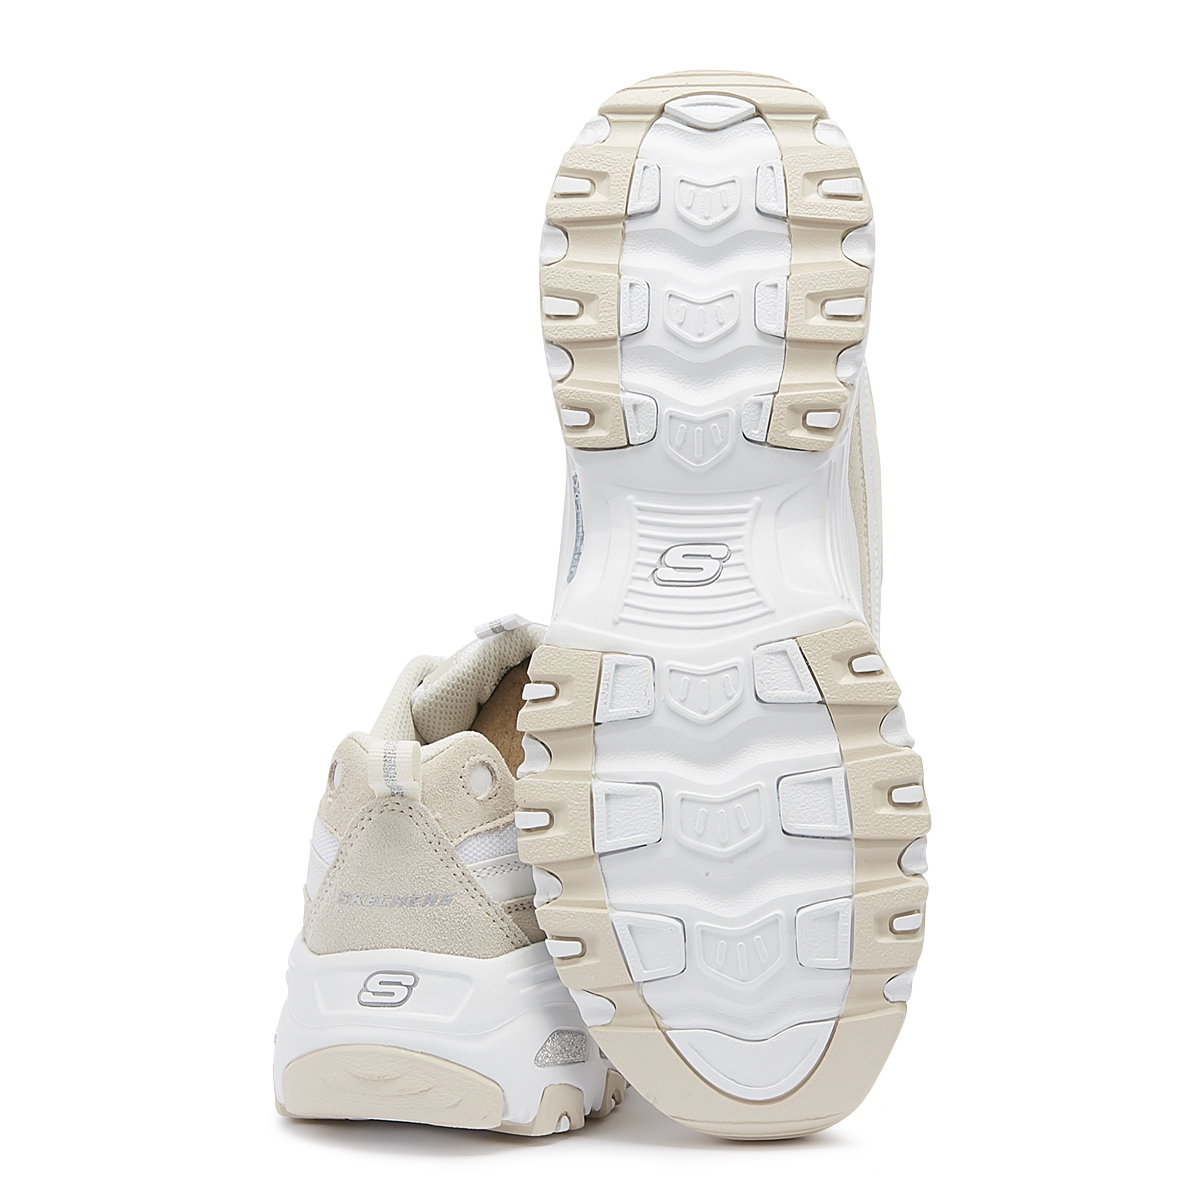 f1bac027997d6 Skechers D'Lites Sure Thing Womens White & Natural Trainers Ladies ...